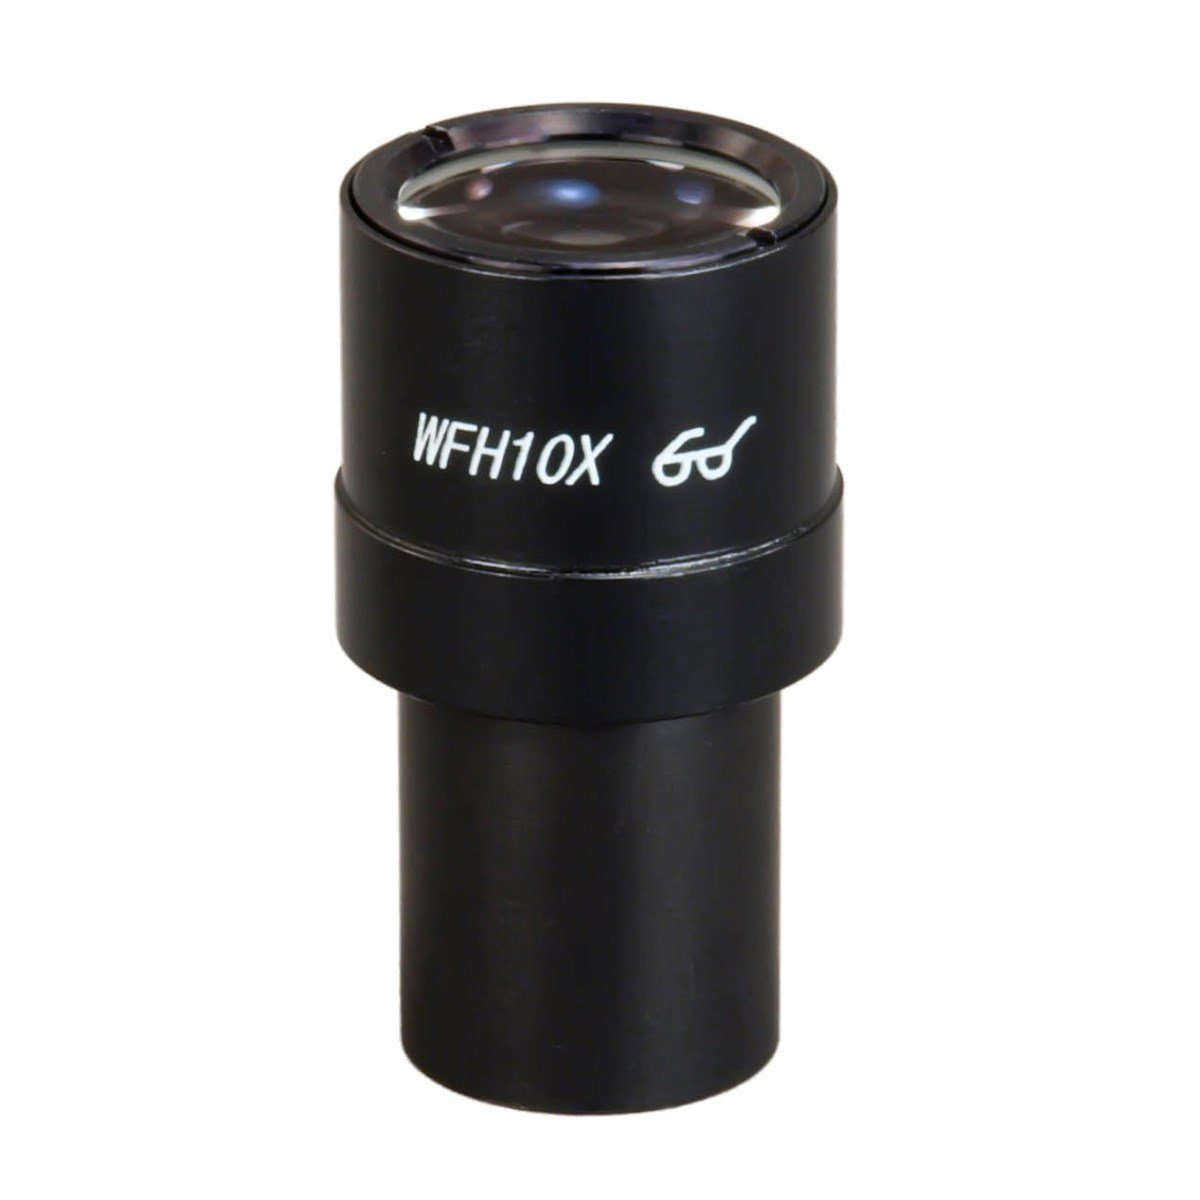 OMAX WFH10X Widefield High Eye-point Eyepiece 23.2mm for Bausch & Lomb Microscopes